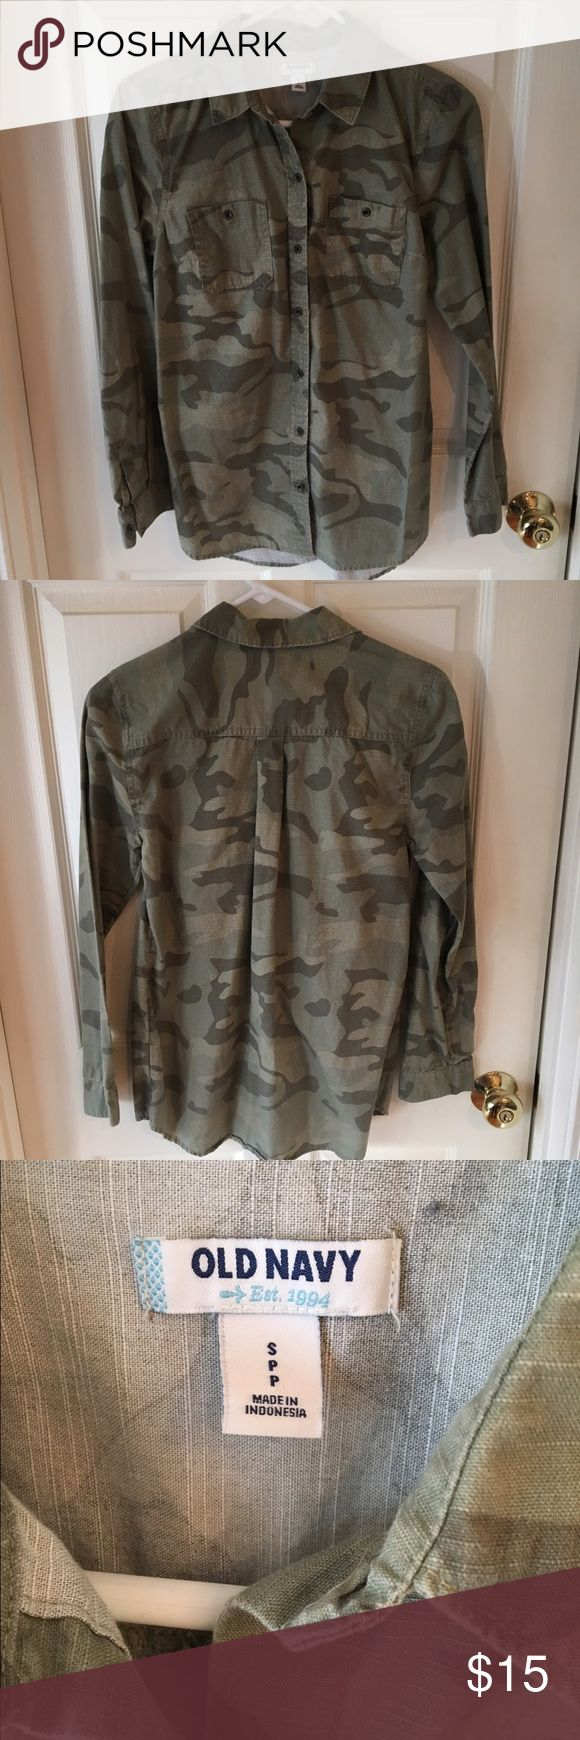 Old Navy Camo Shirt Old Navy Camo Button Up shirt. Women's Size Small. Old Navy Tops Button Down Shirts